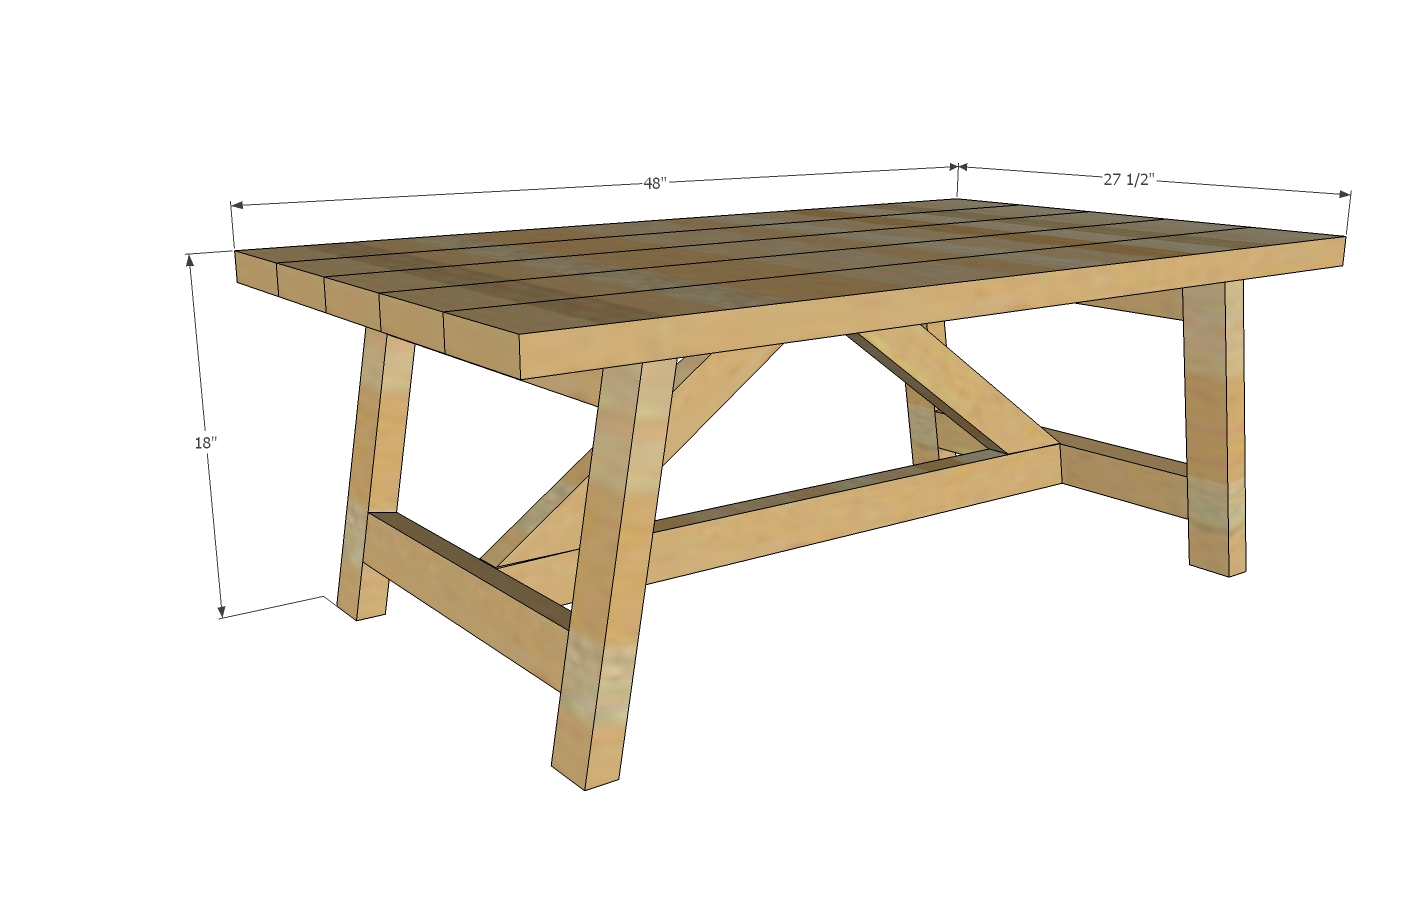 table wood plans